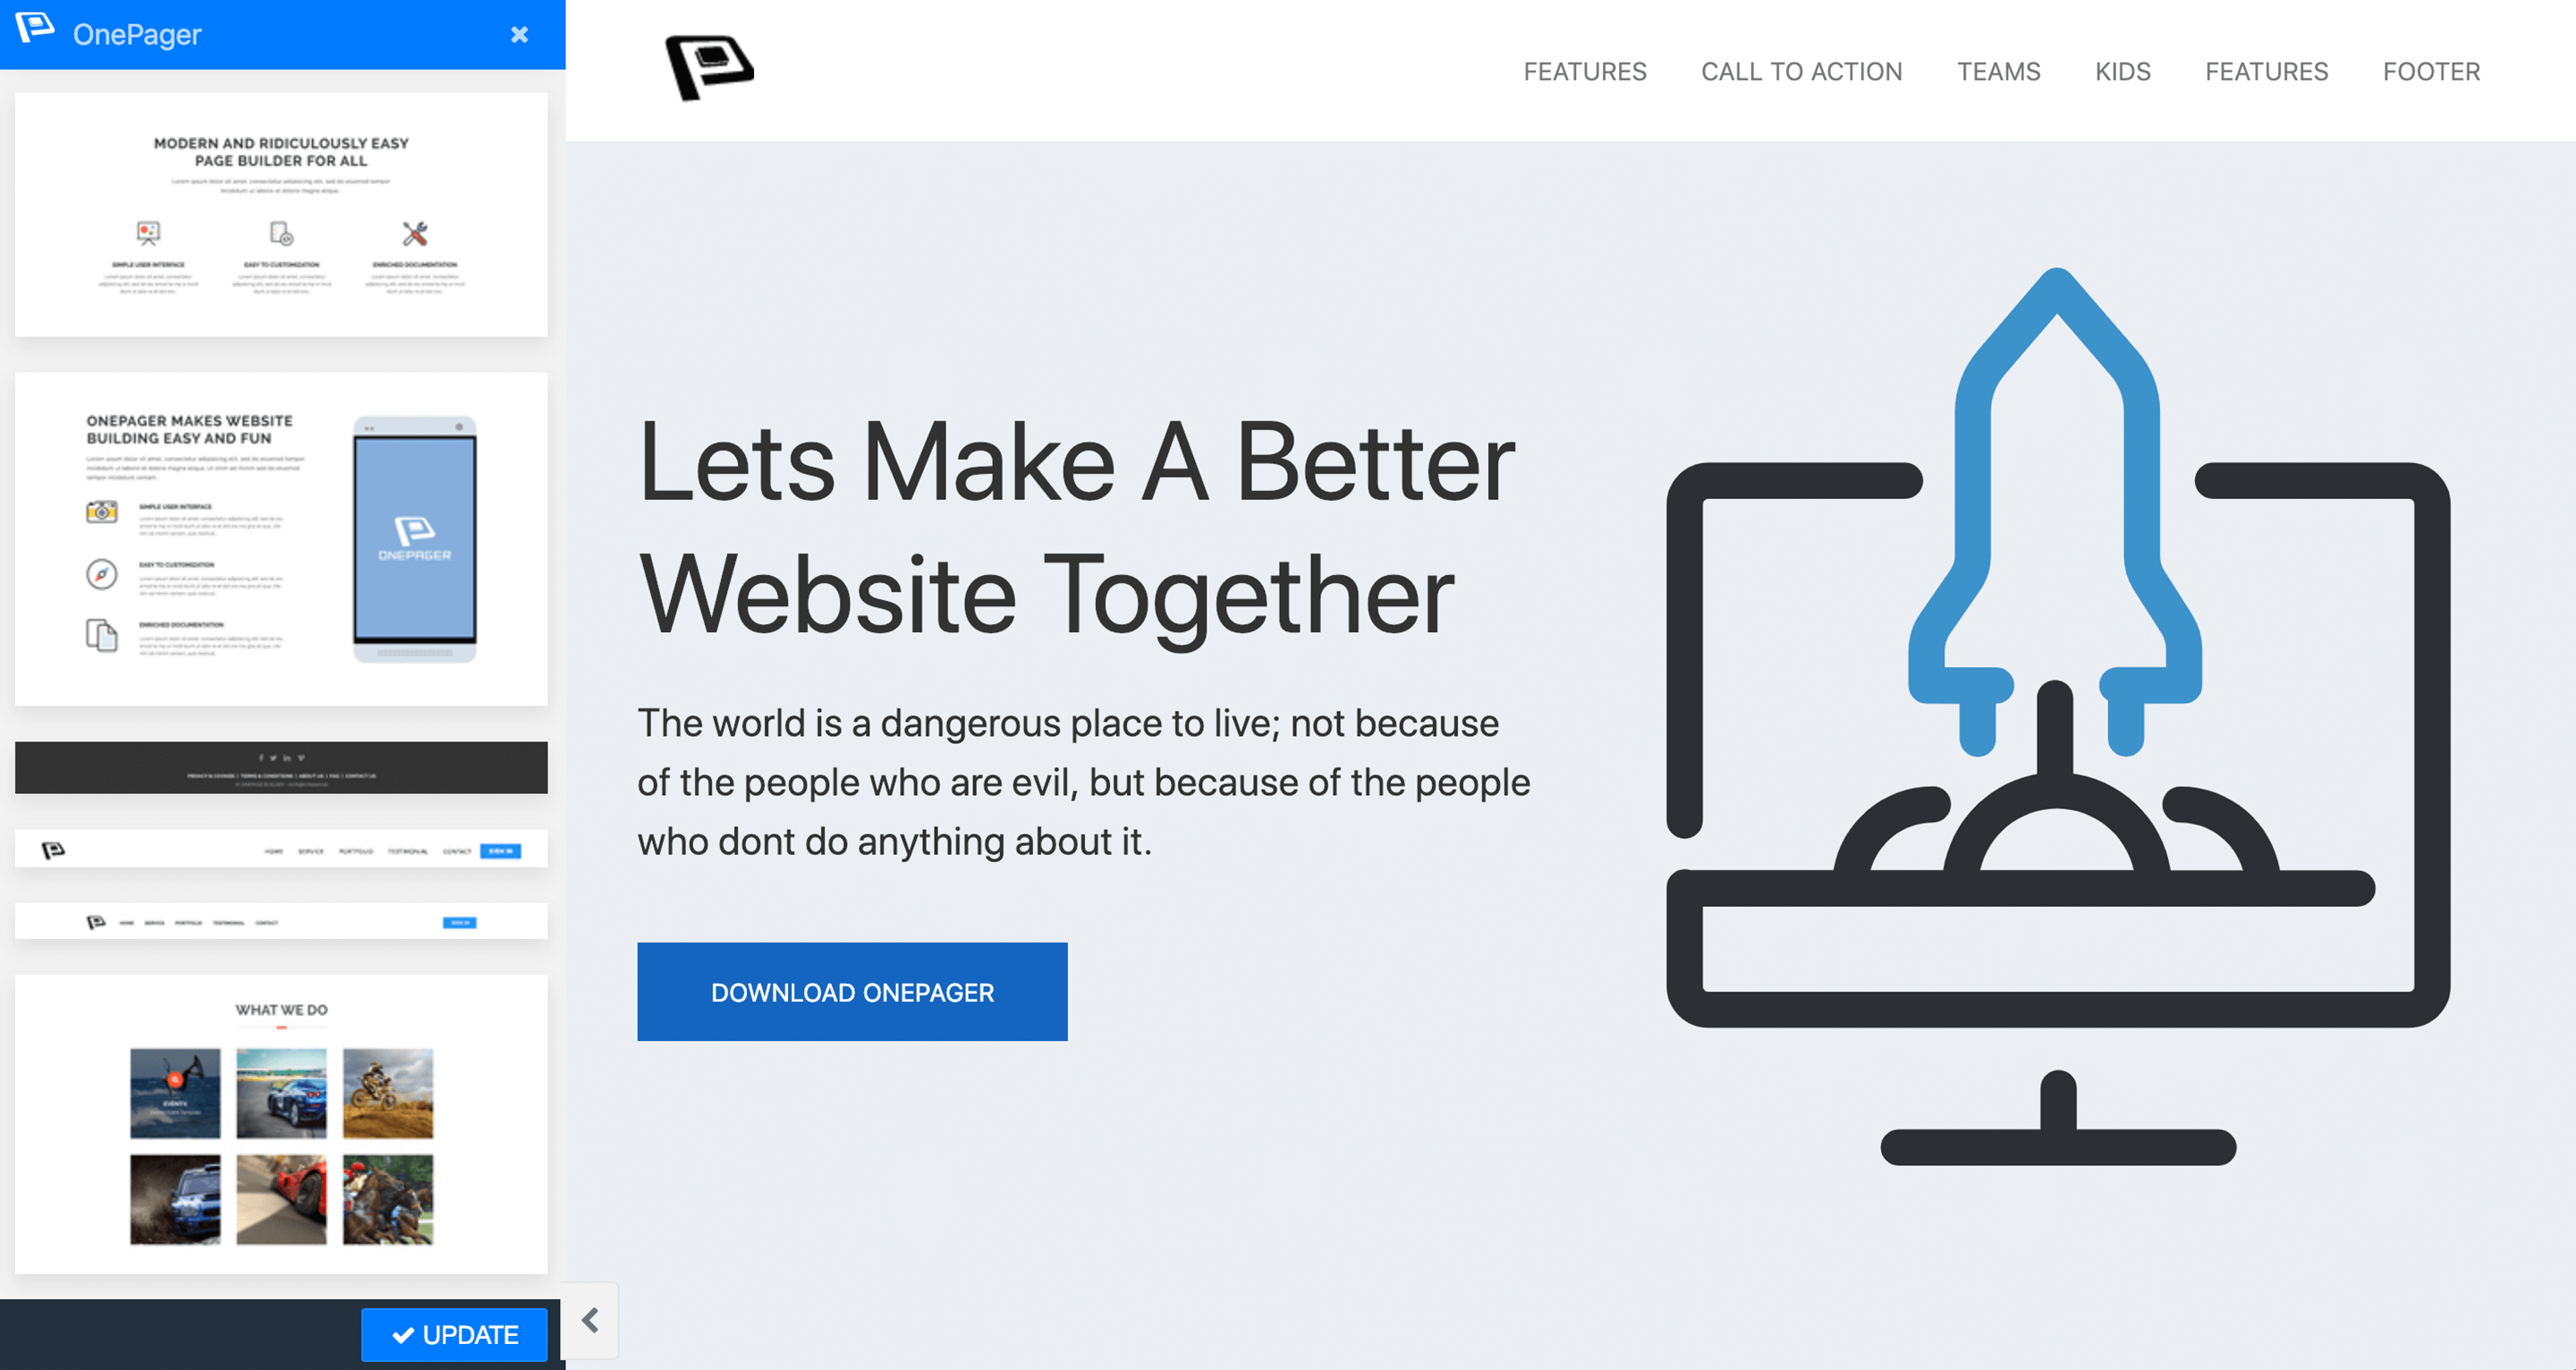 Enable Onepage from your page with presets